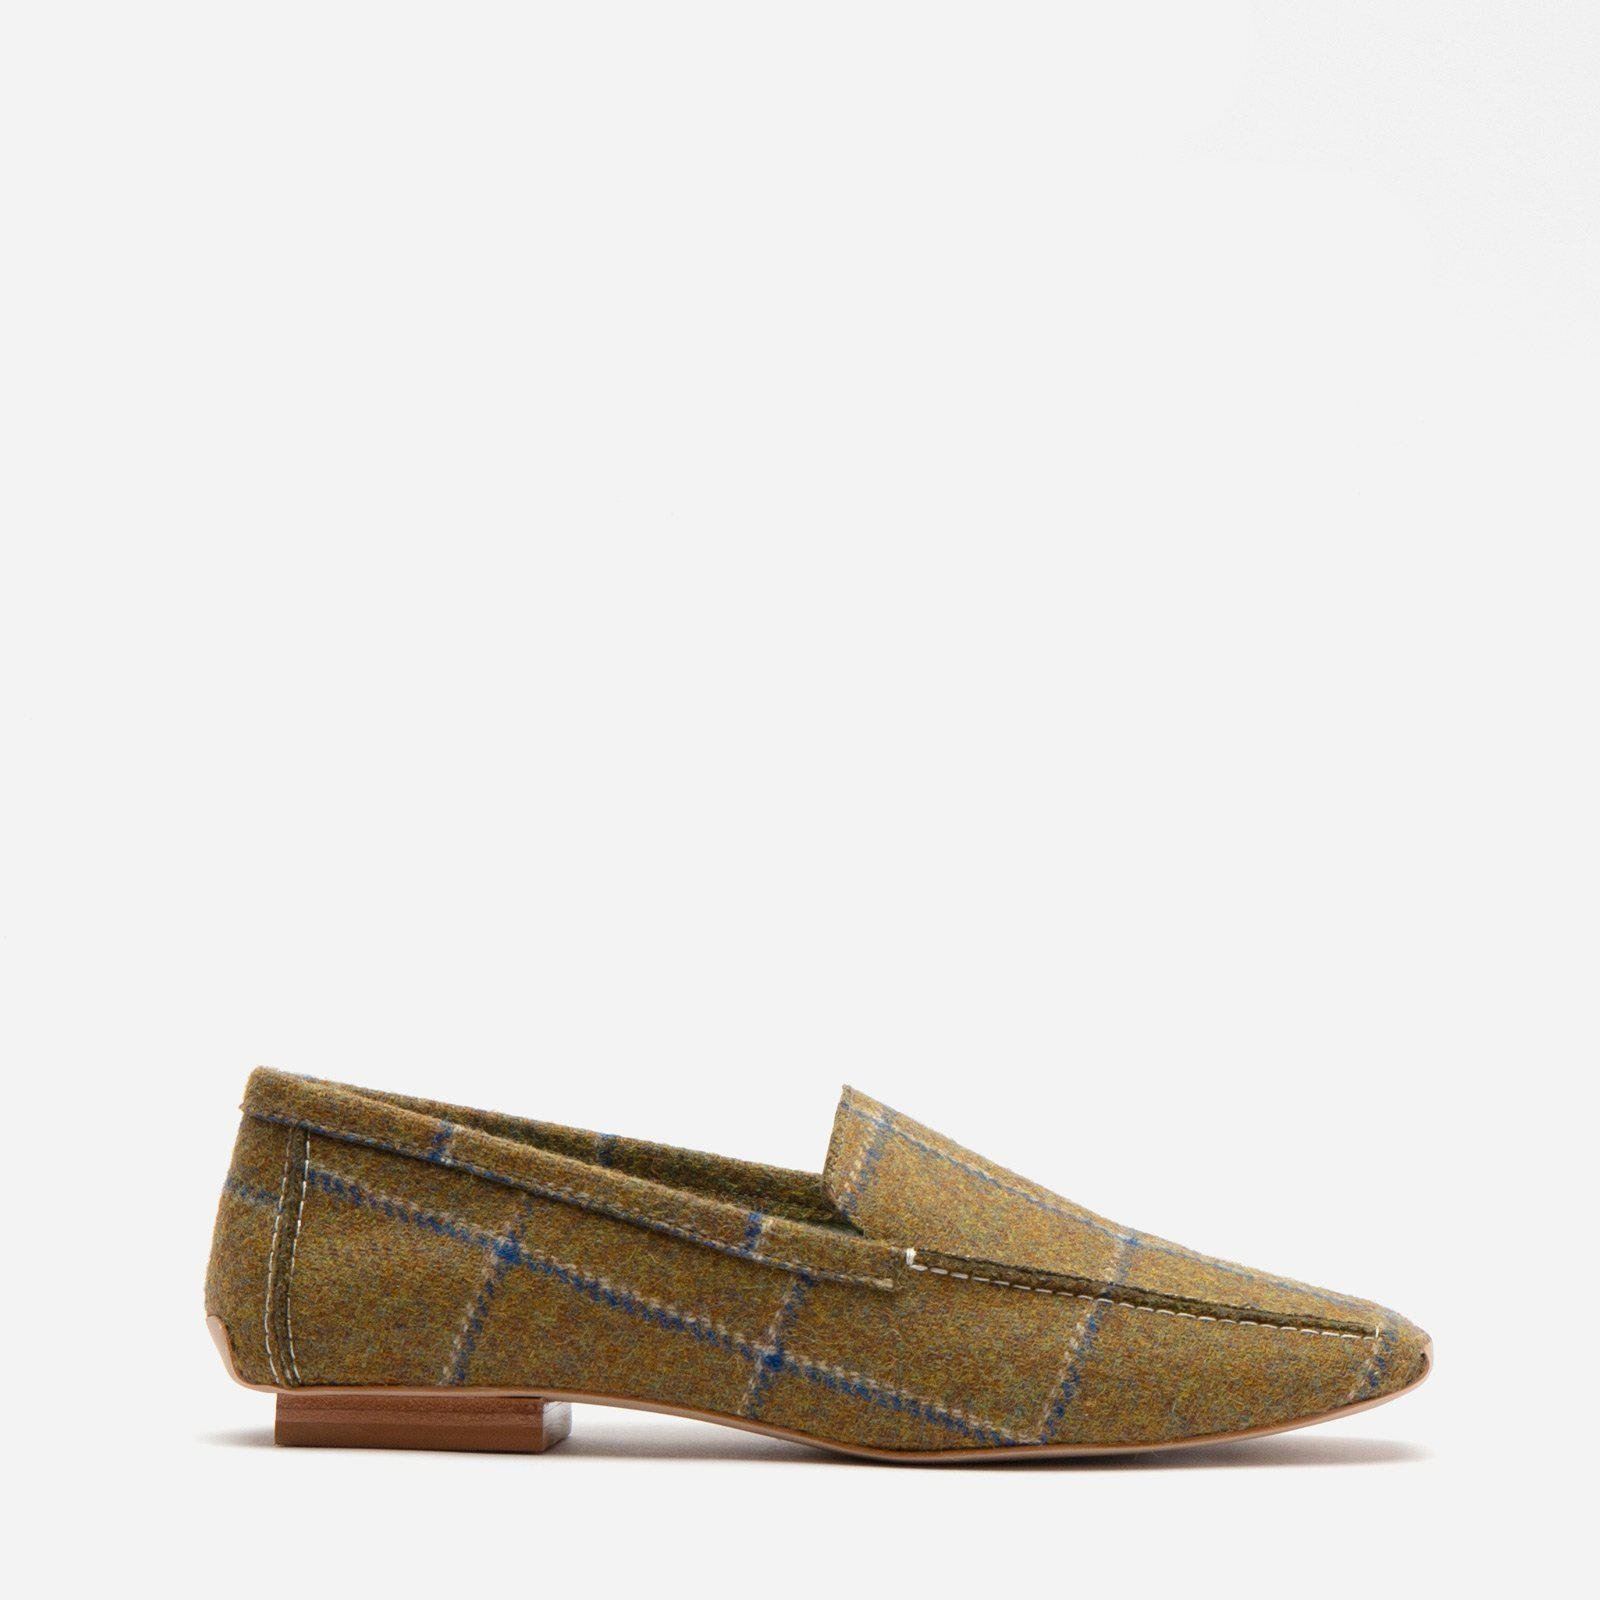 Elyce Loafer Wool Plaid Olive Navy